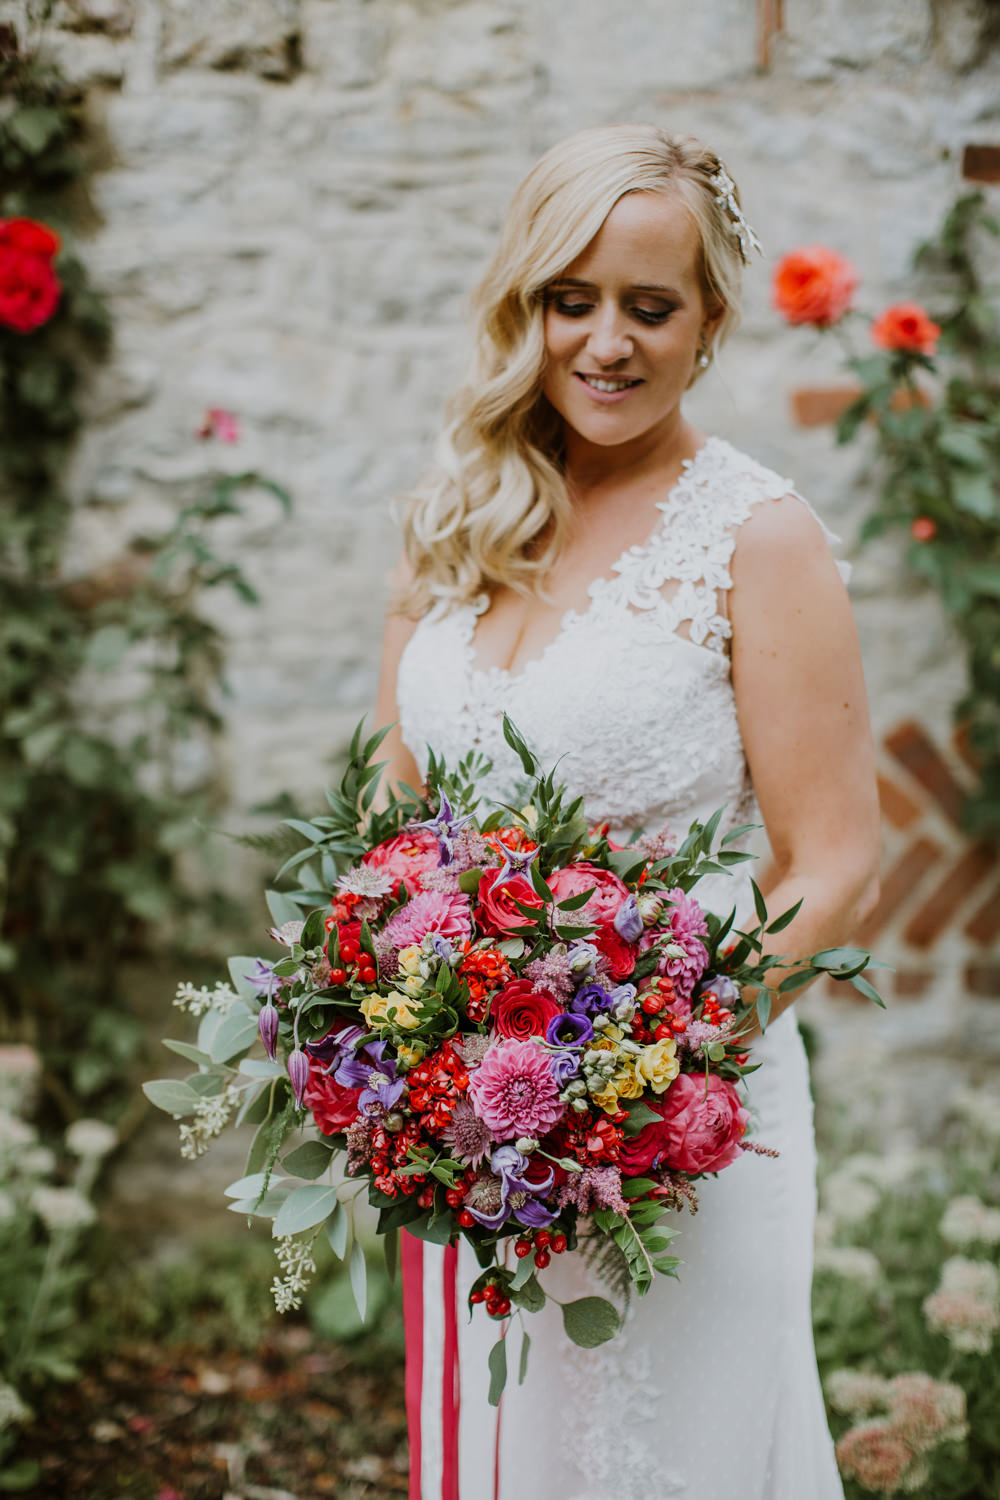 Bouquet Flowers Bride Bridal Pink Red Purple Greenery Foliage Peony Rose Clematis Ribbons Notley Abbey Wedding Alexandra Jane Photography